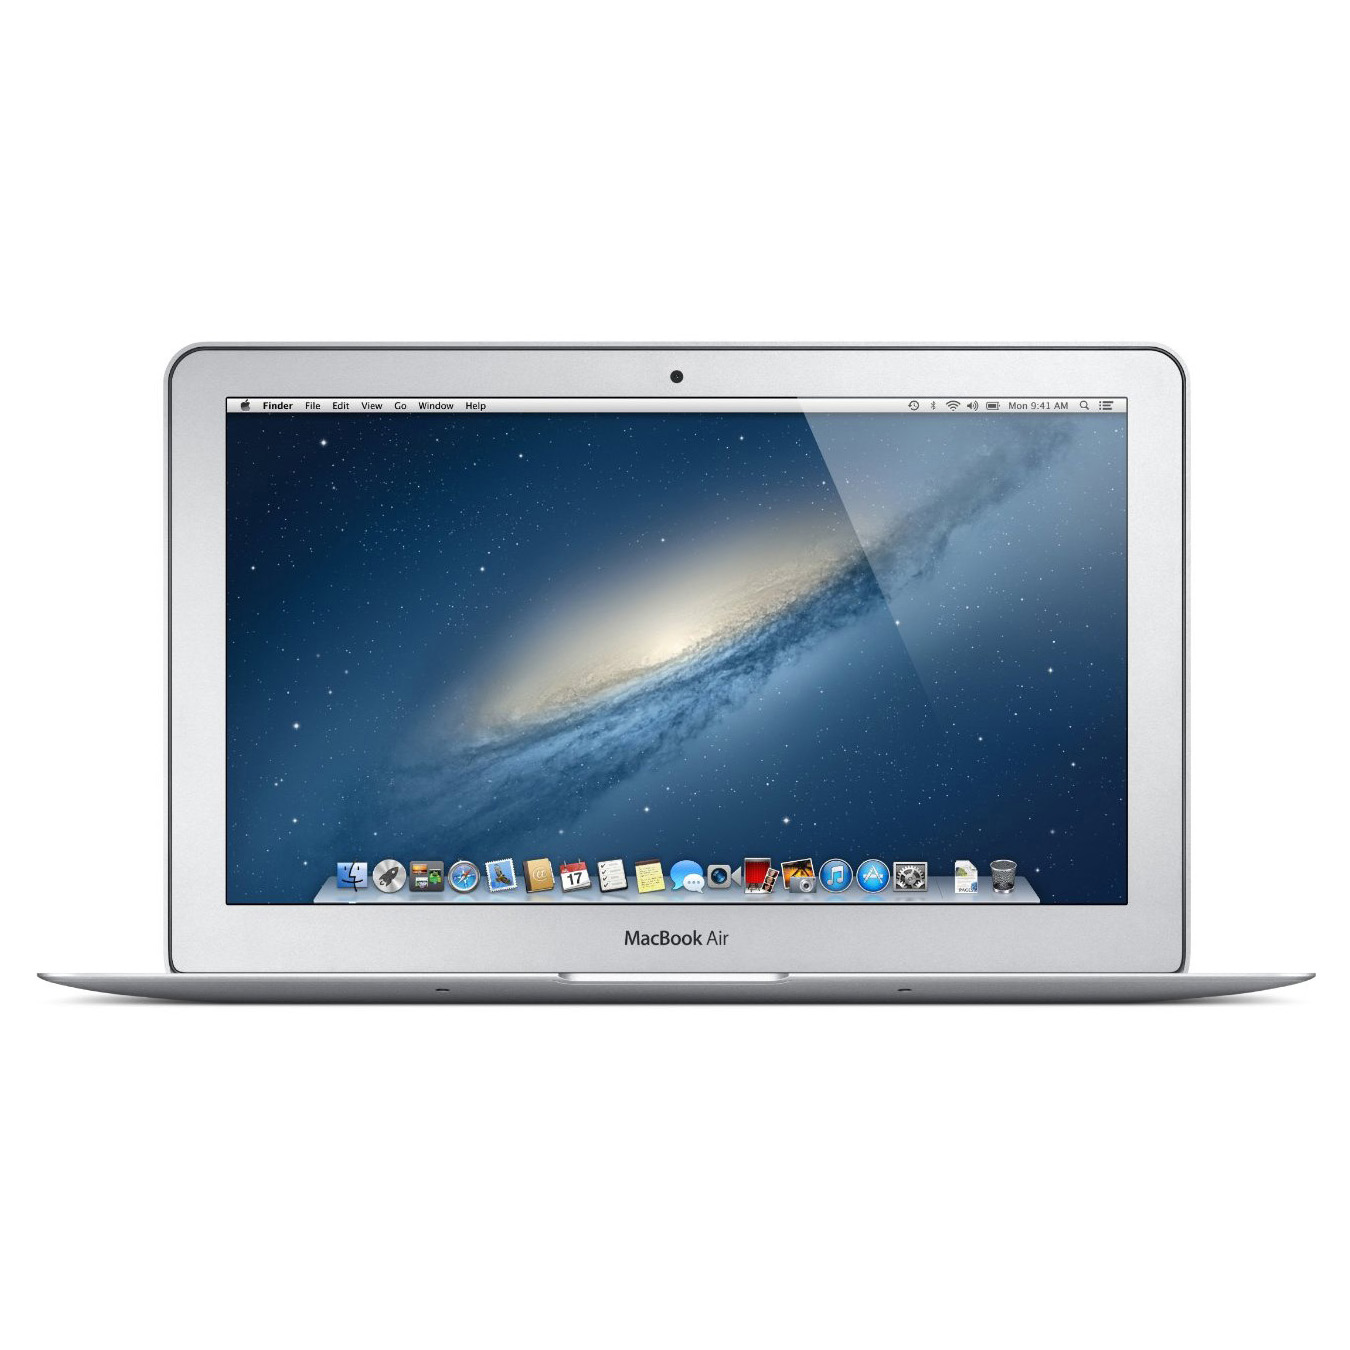 "Refurbished Apple Macbook Air 13.3"" LED Laptop Intel i5-4260U Dual Core 1.4GHz 8Gb 128GB SSD"